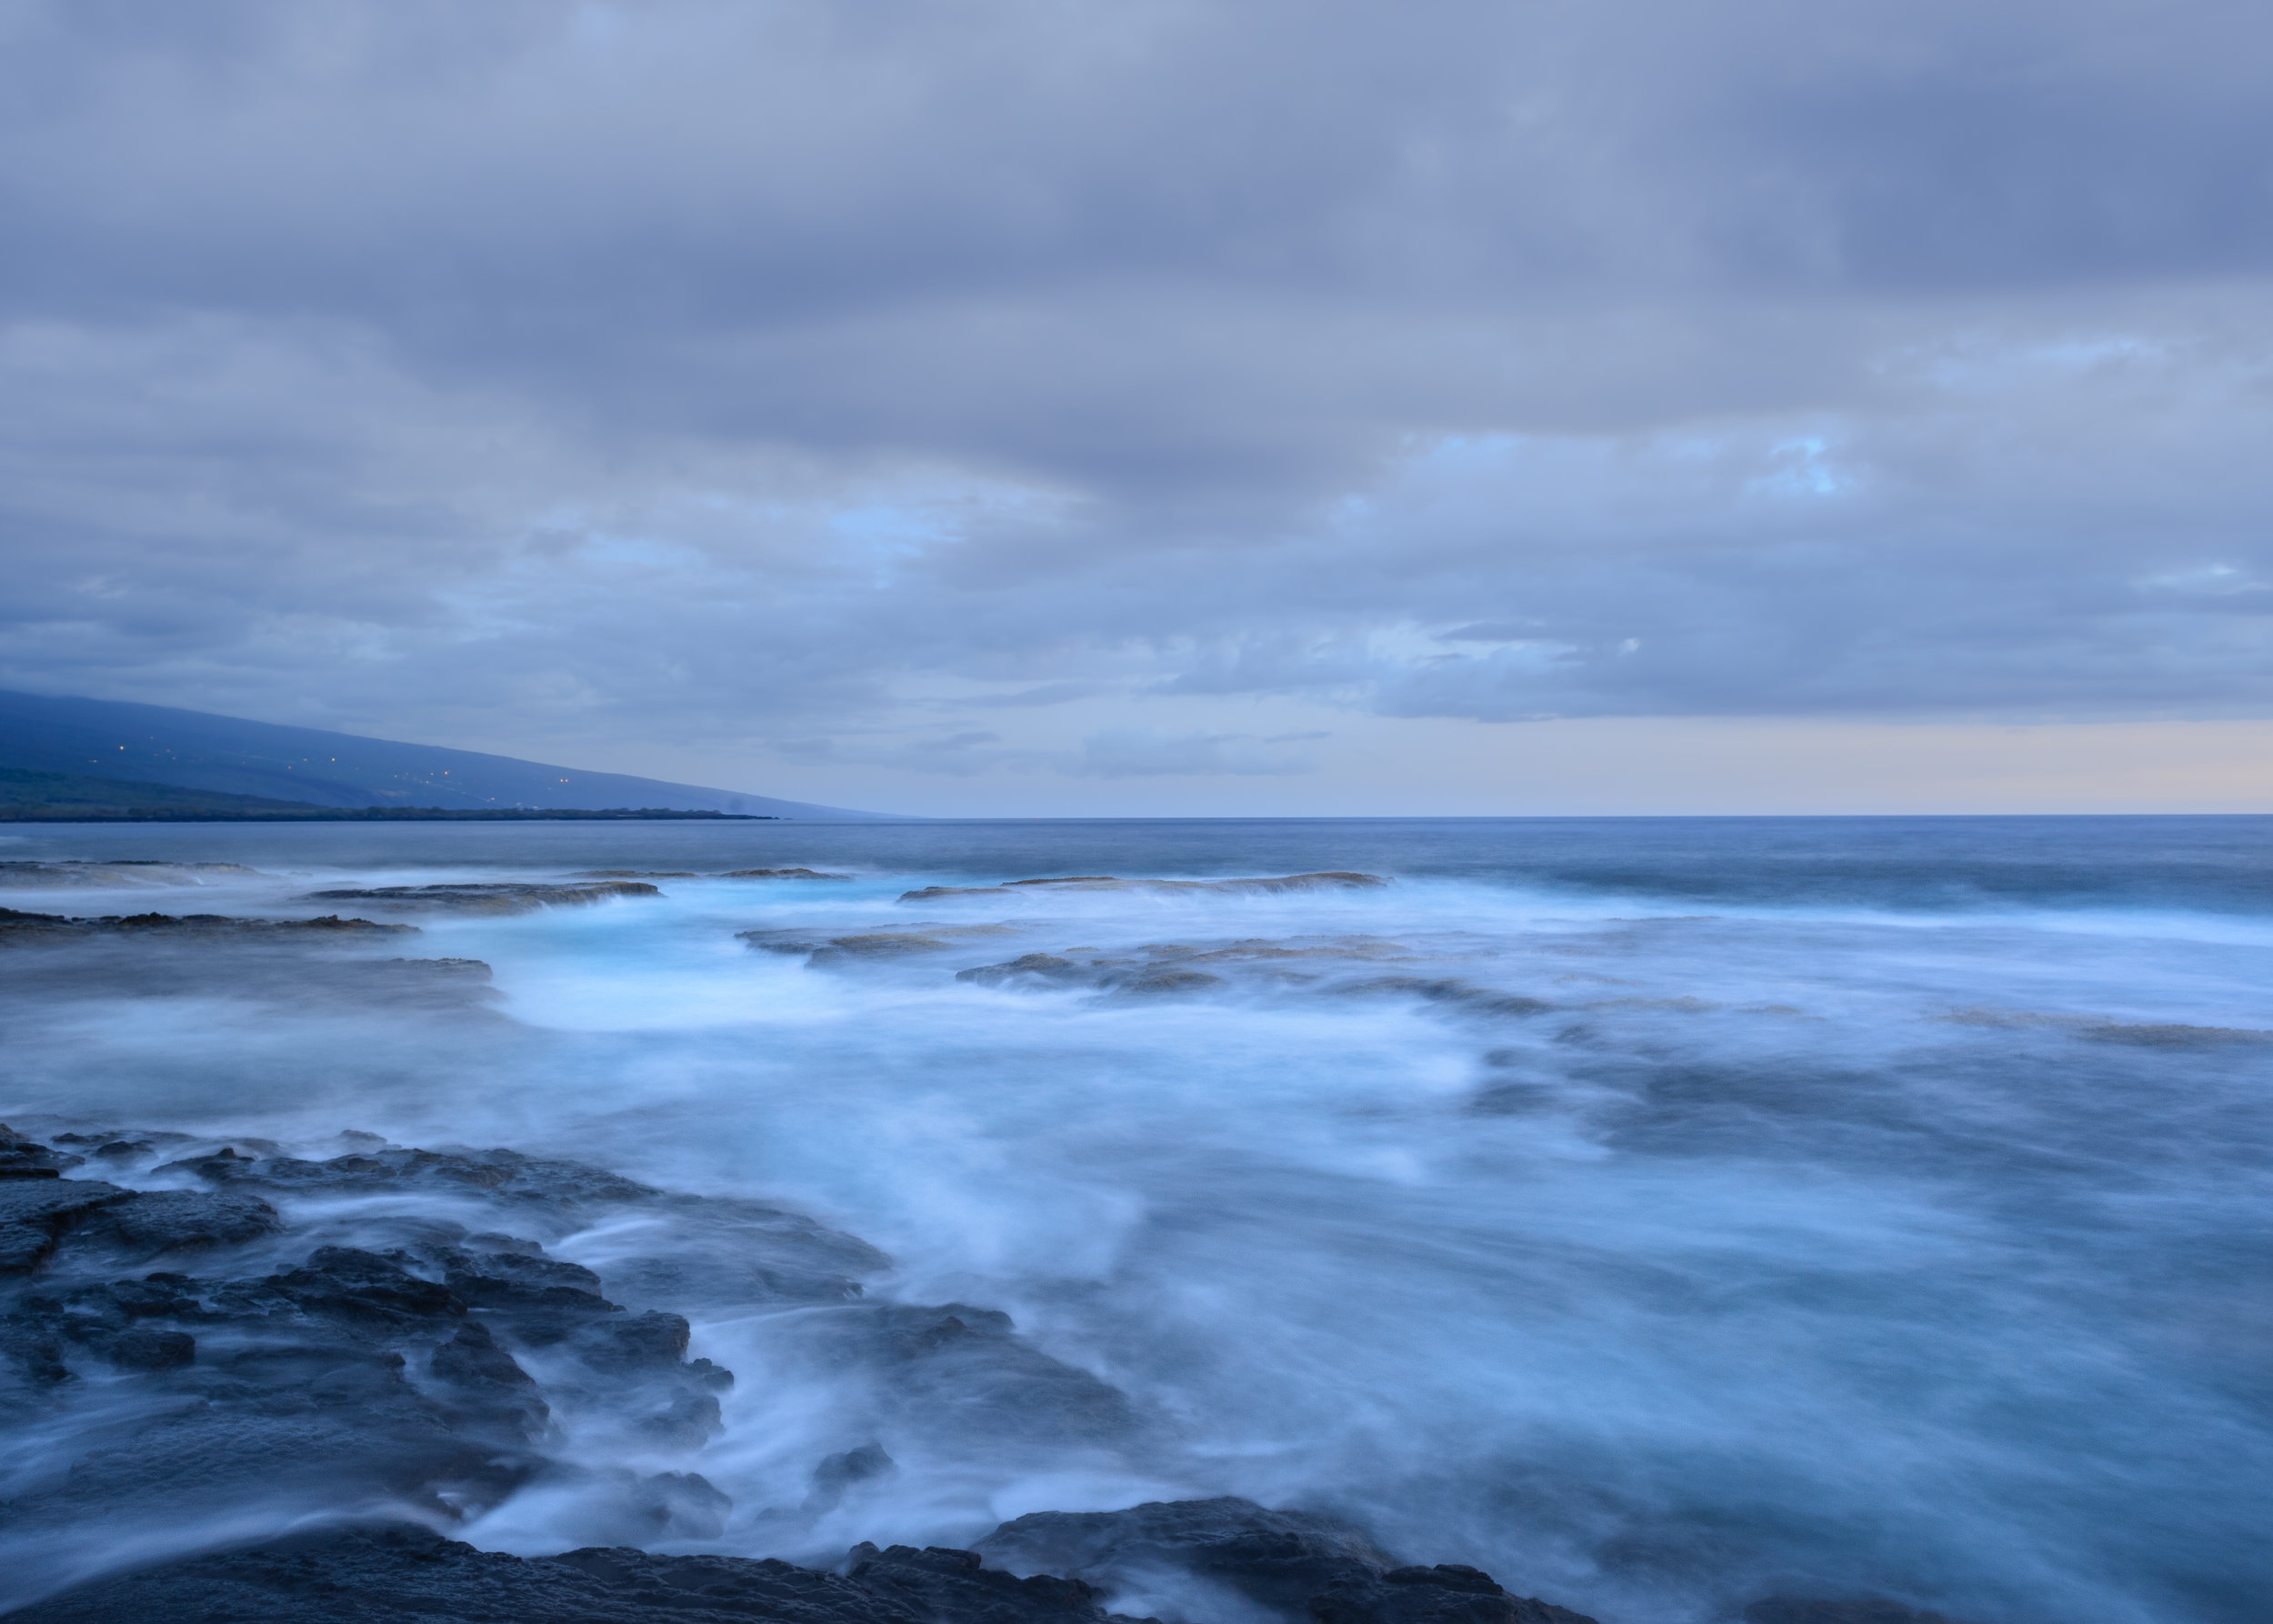 Hawaii in the blue hour. Nikon D4. 15 seconds, f/11, ISO 400.